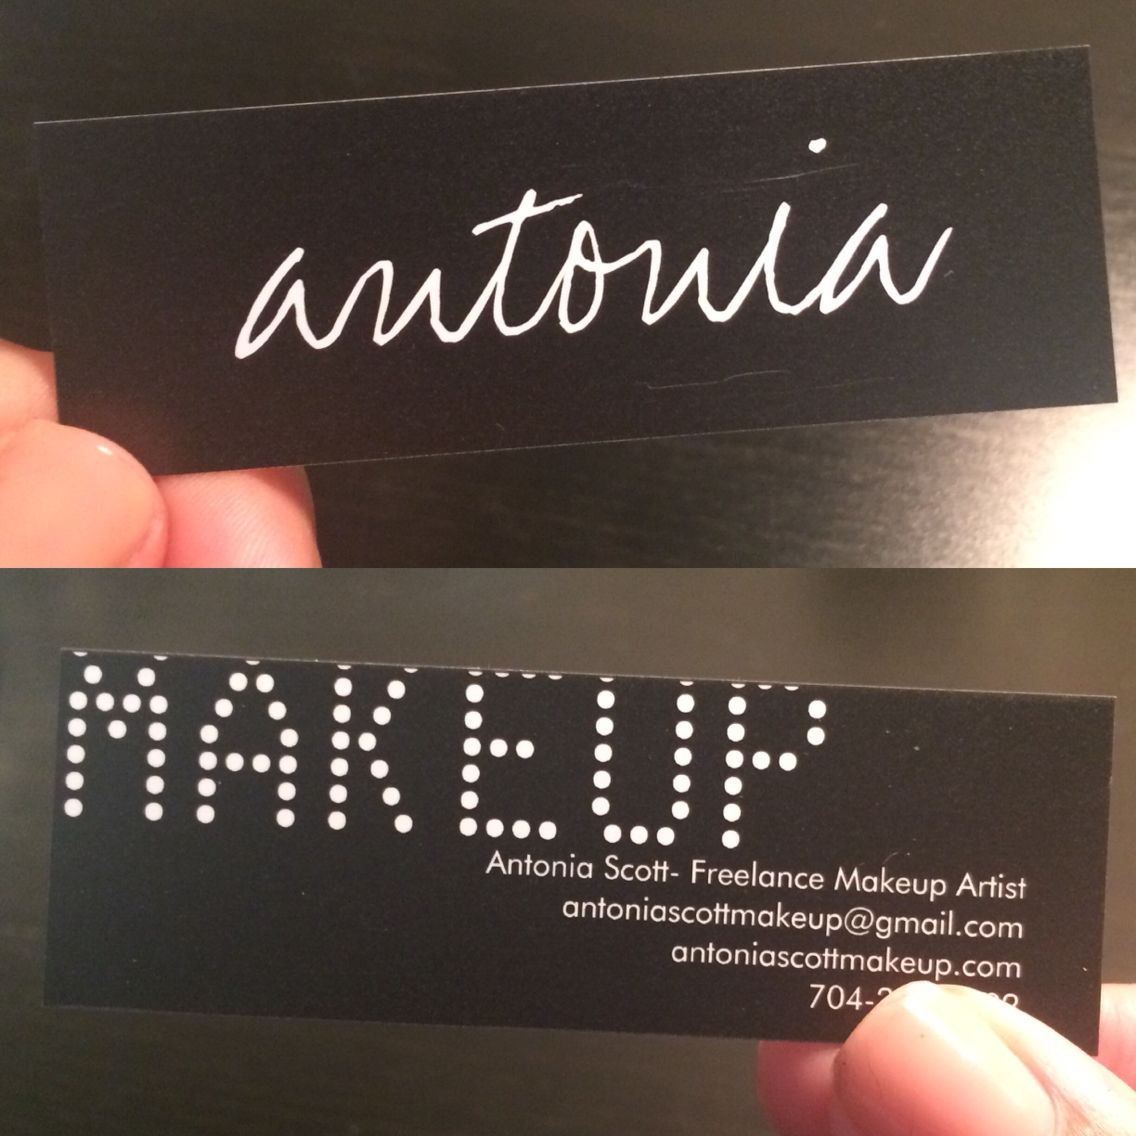 My make up artist business cards. Please follow my